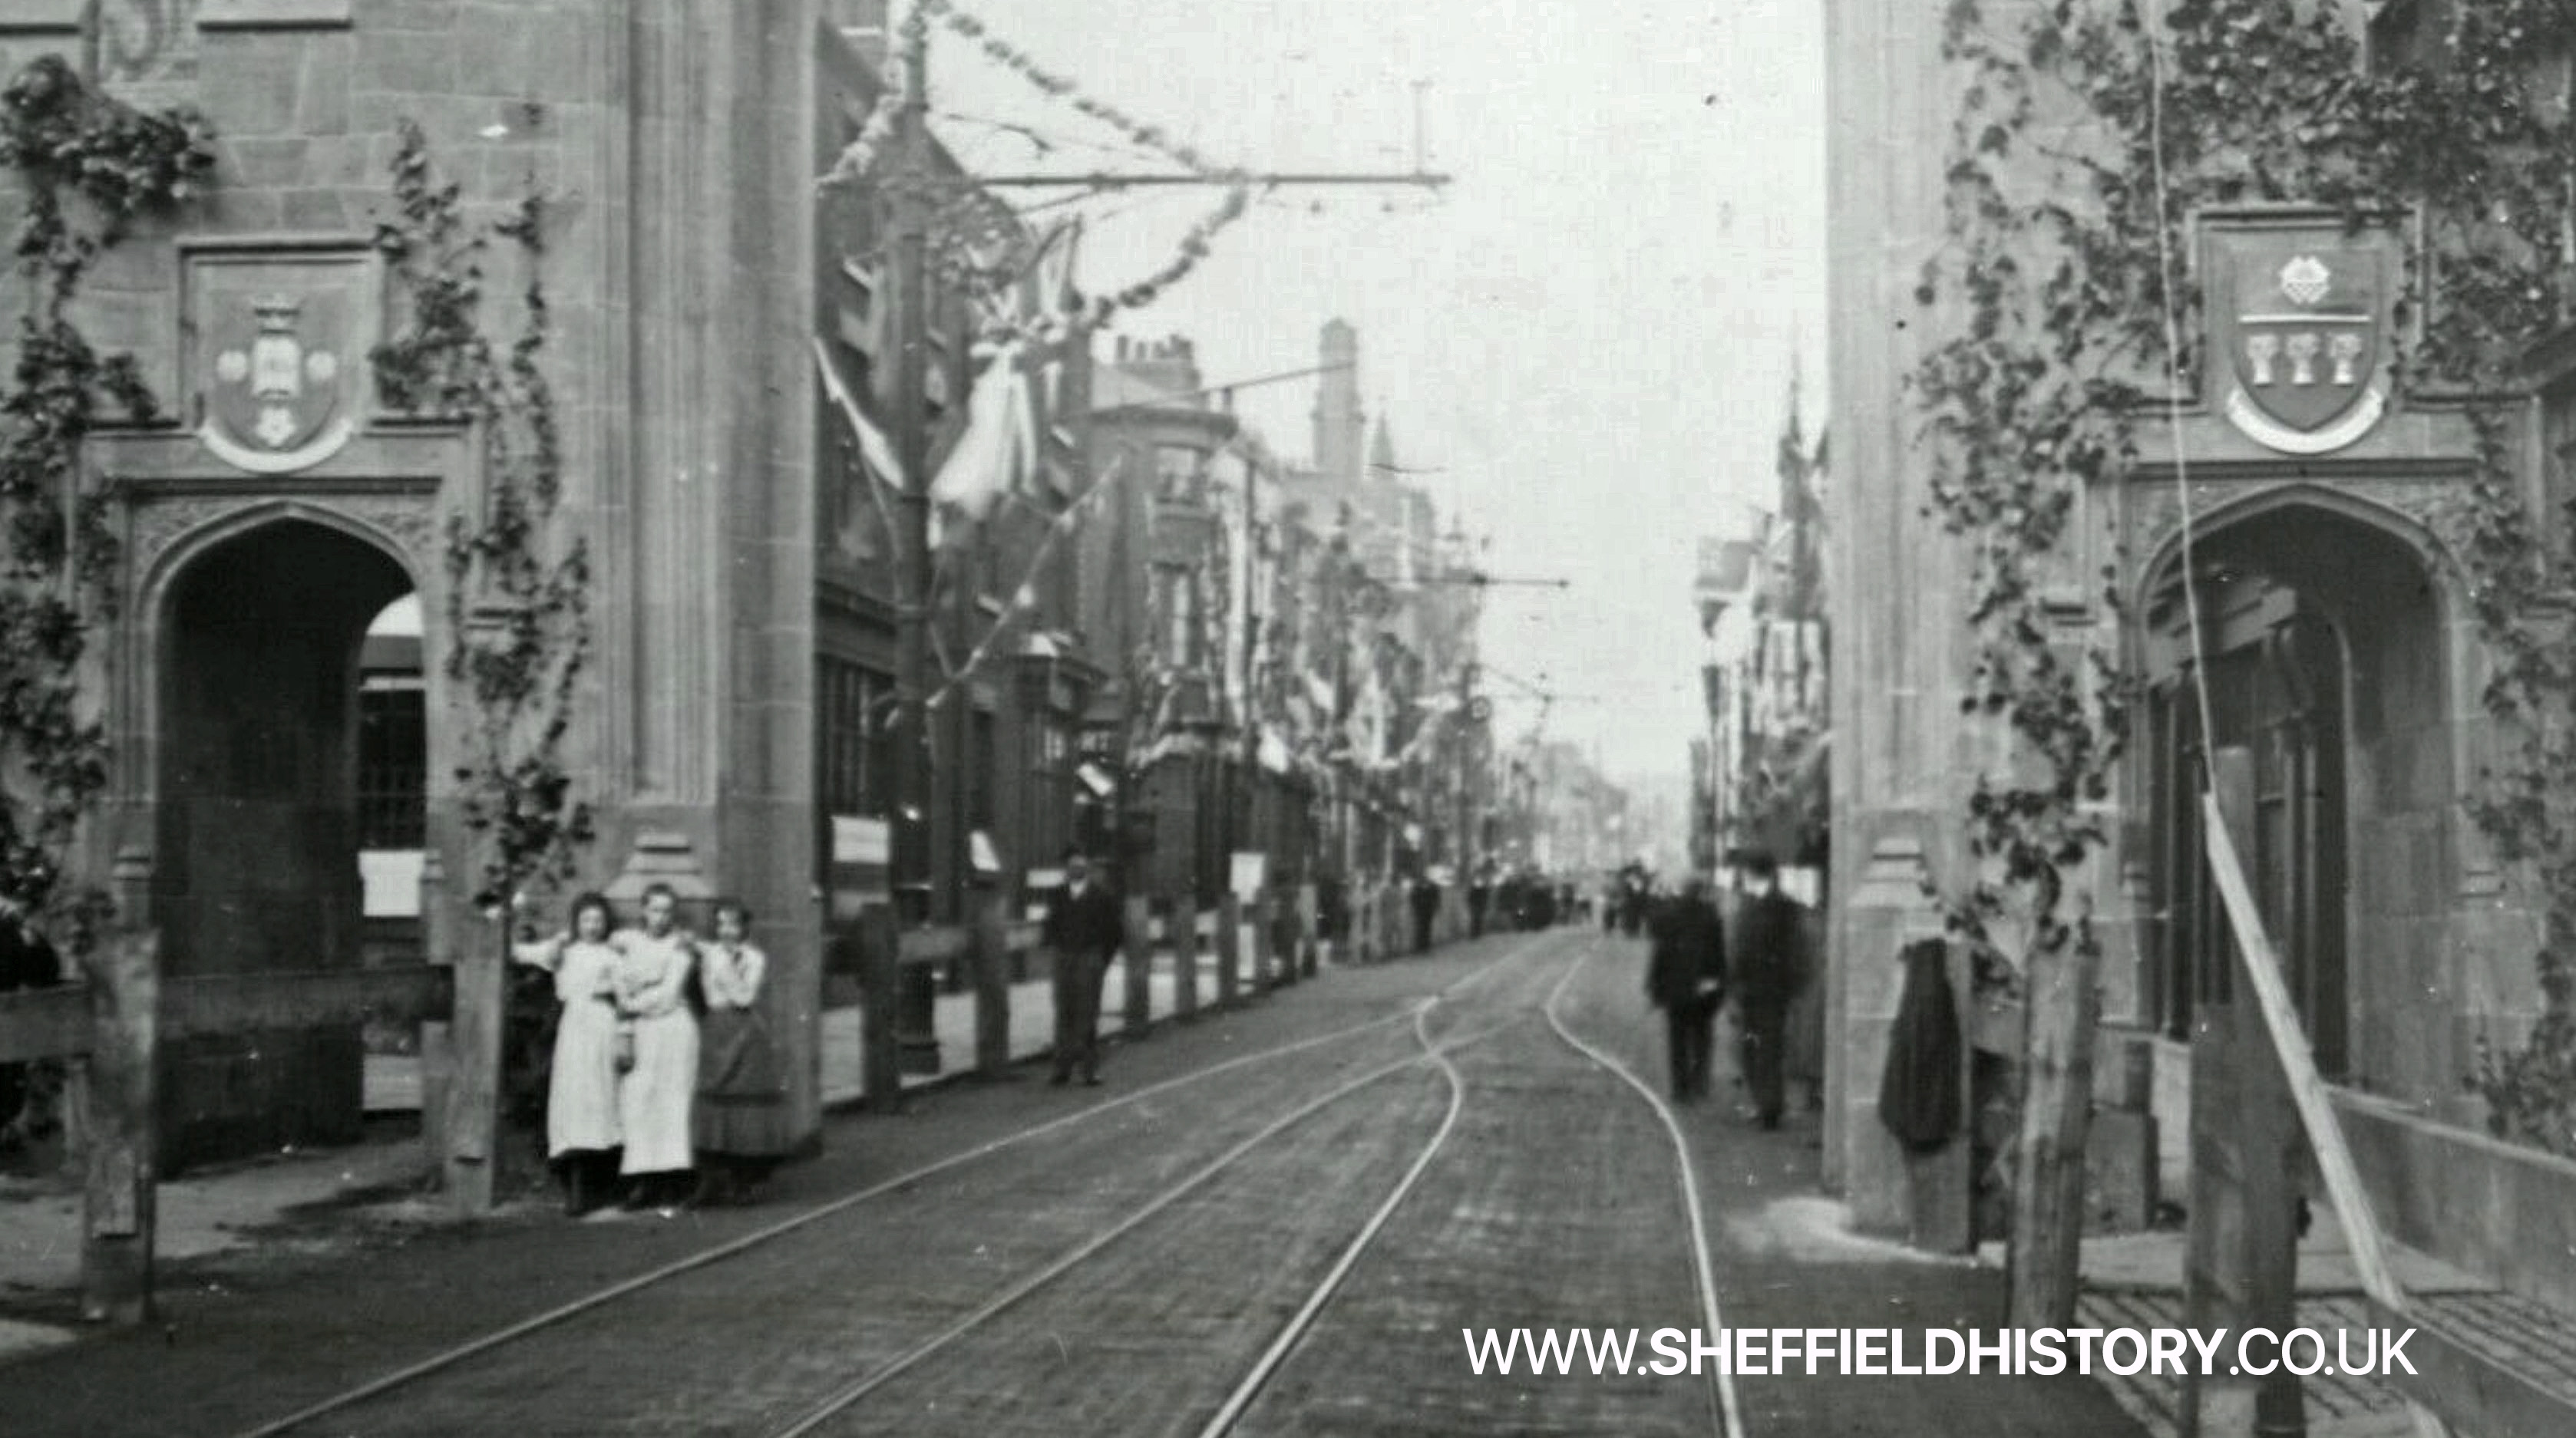 West Street Arch in Sheffield City Centre - Can you tell us exactly where this was?